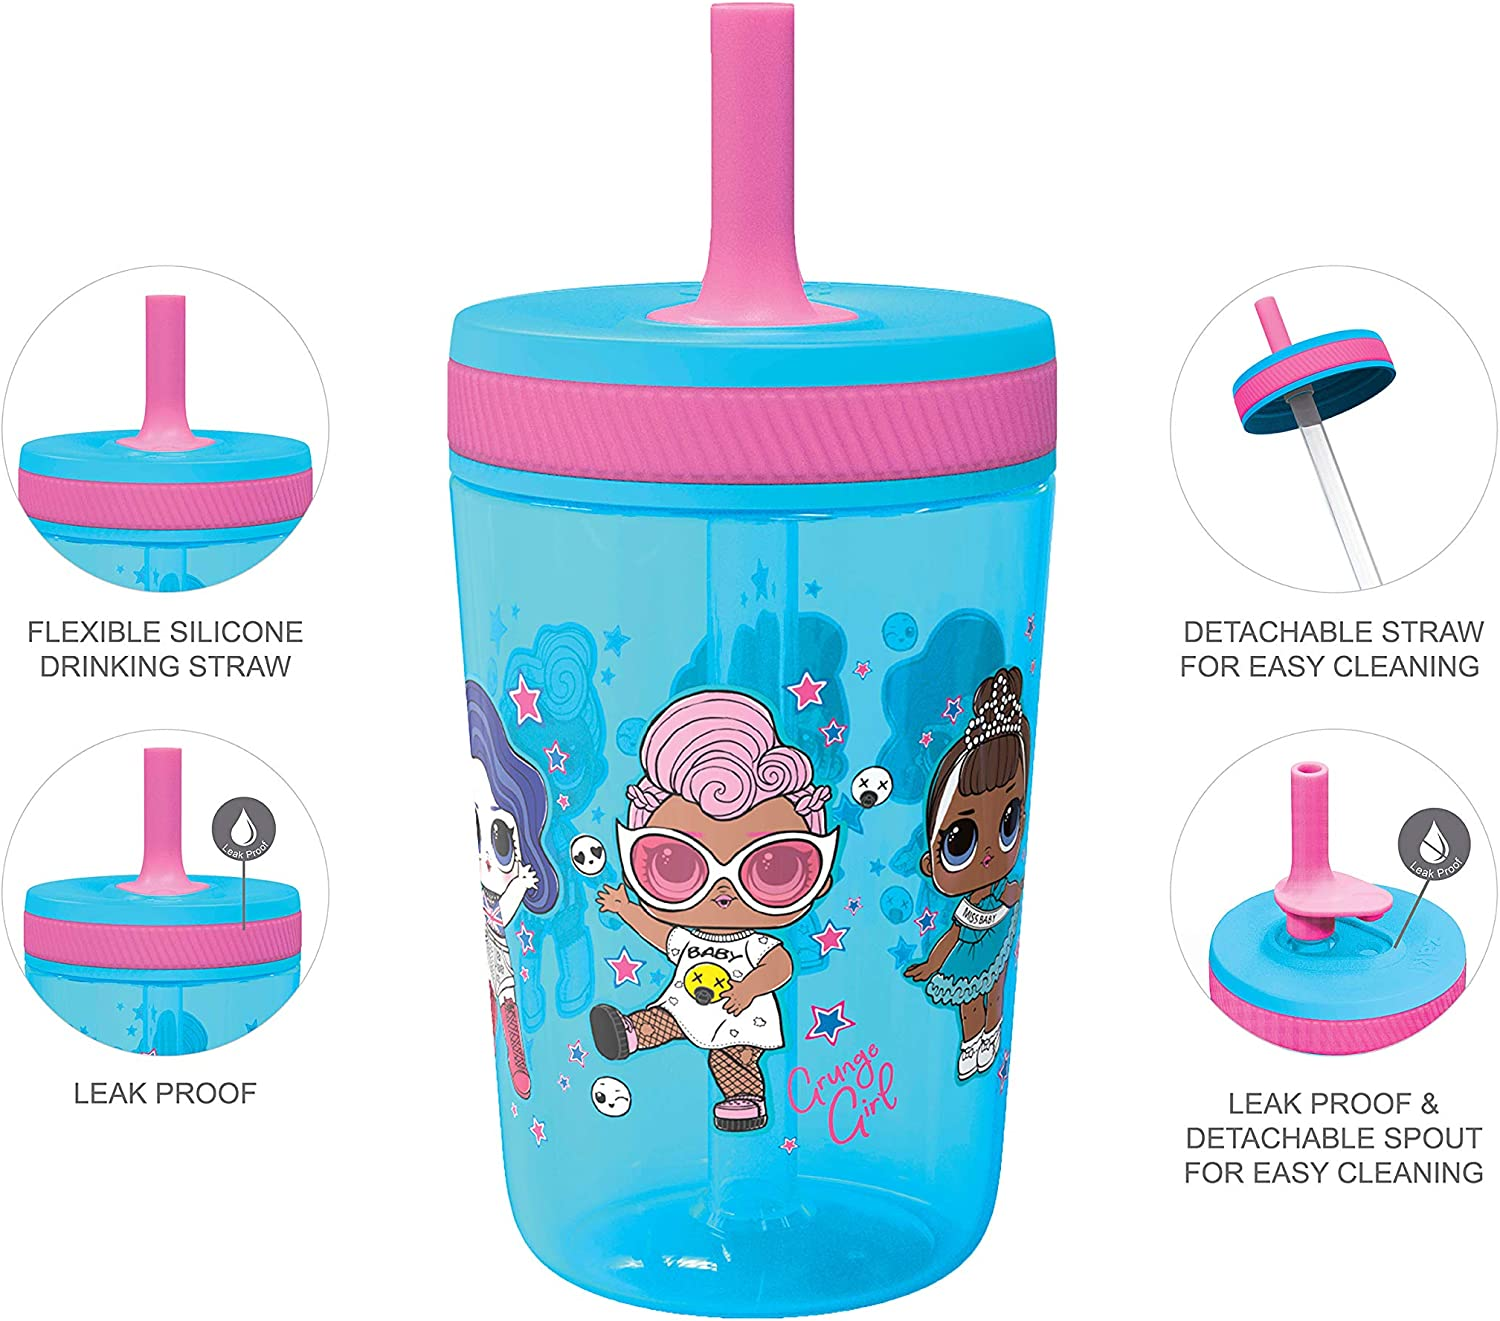 2pc Set Zak Designs Dreamworks Trolls 2 Movie Poppy Kelso 15 oz Tumbler Set BPA-Free Leak-Proof Screw-On Lid with Straw Made of Durable Plastic and Silicone Perfect Bundle for Kids